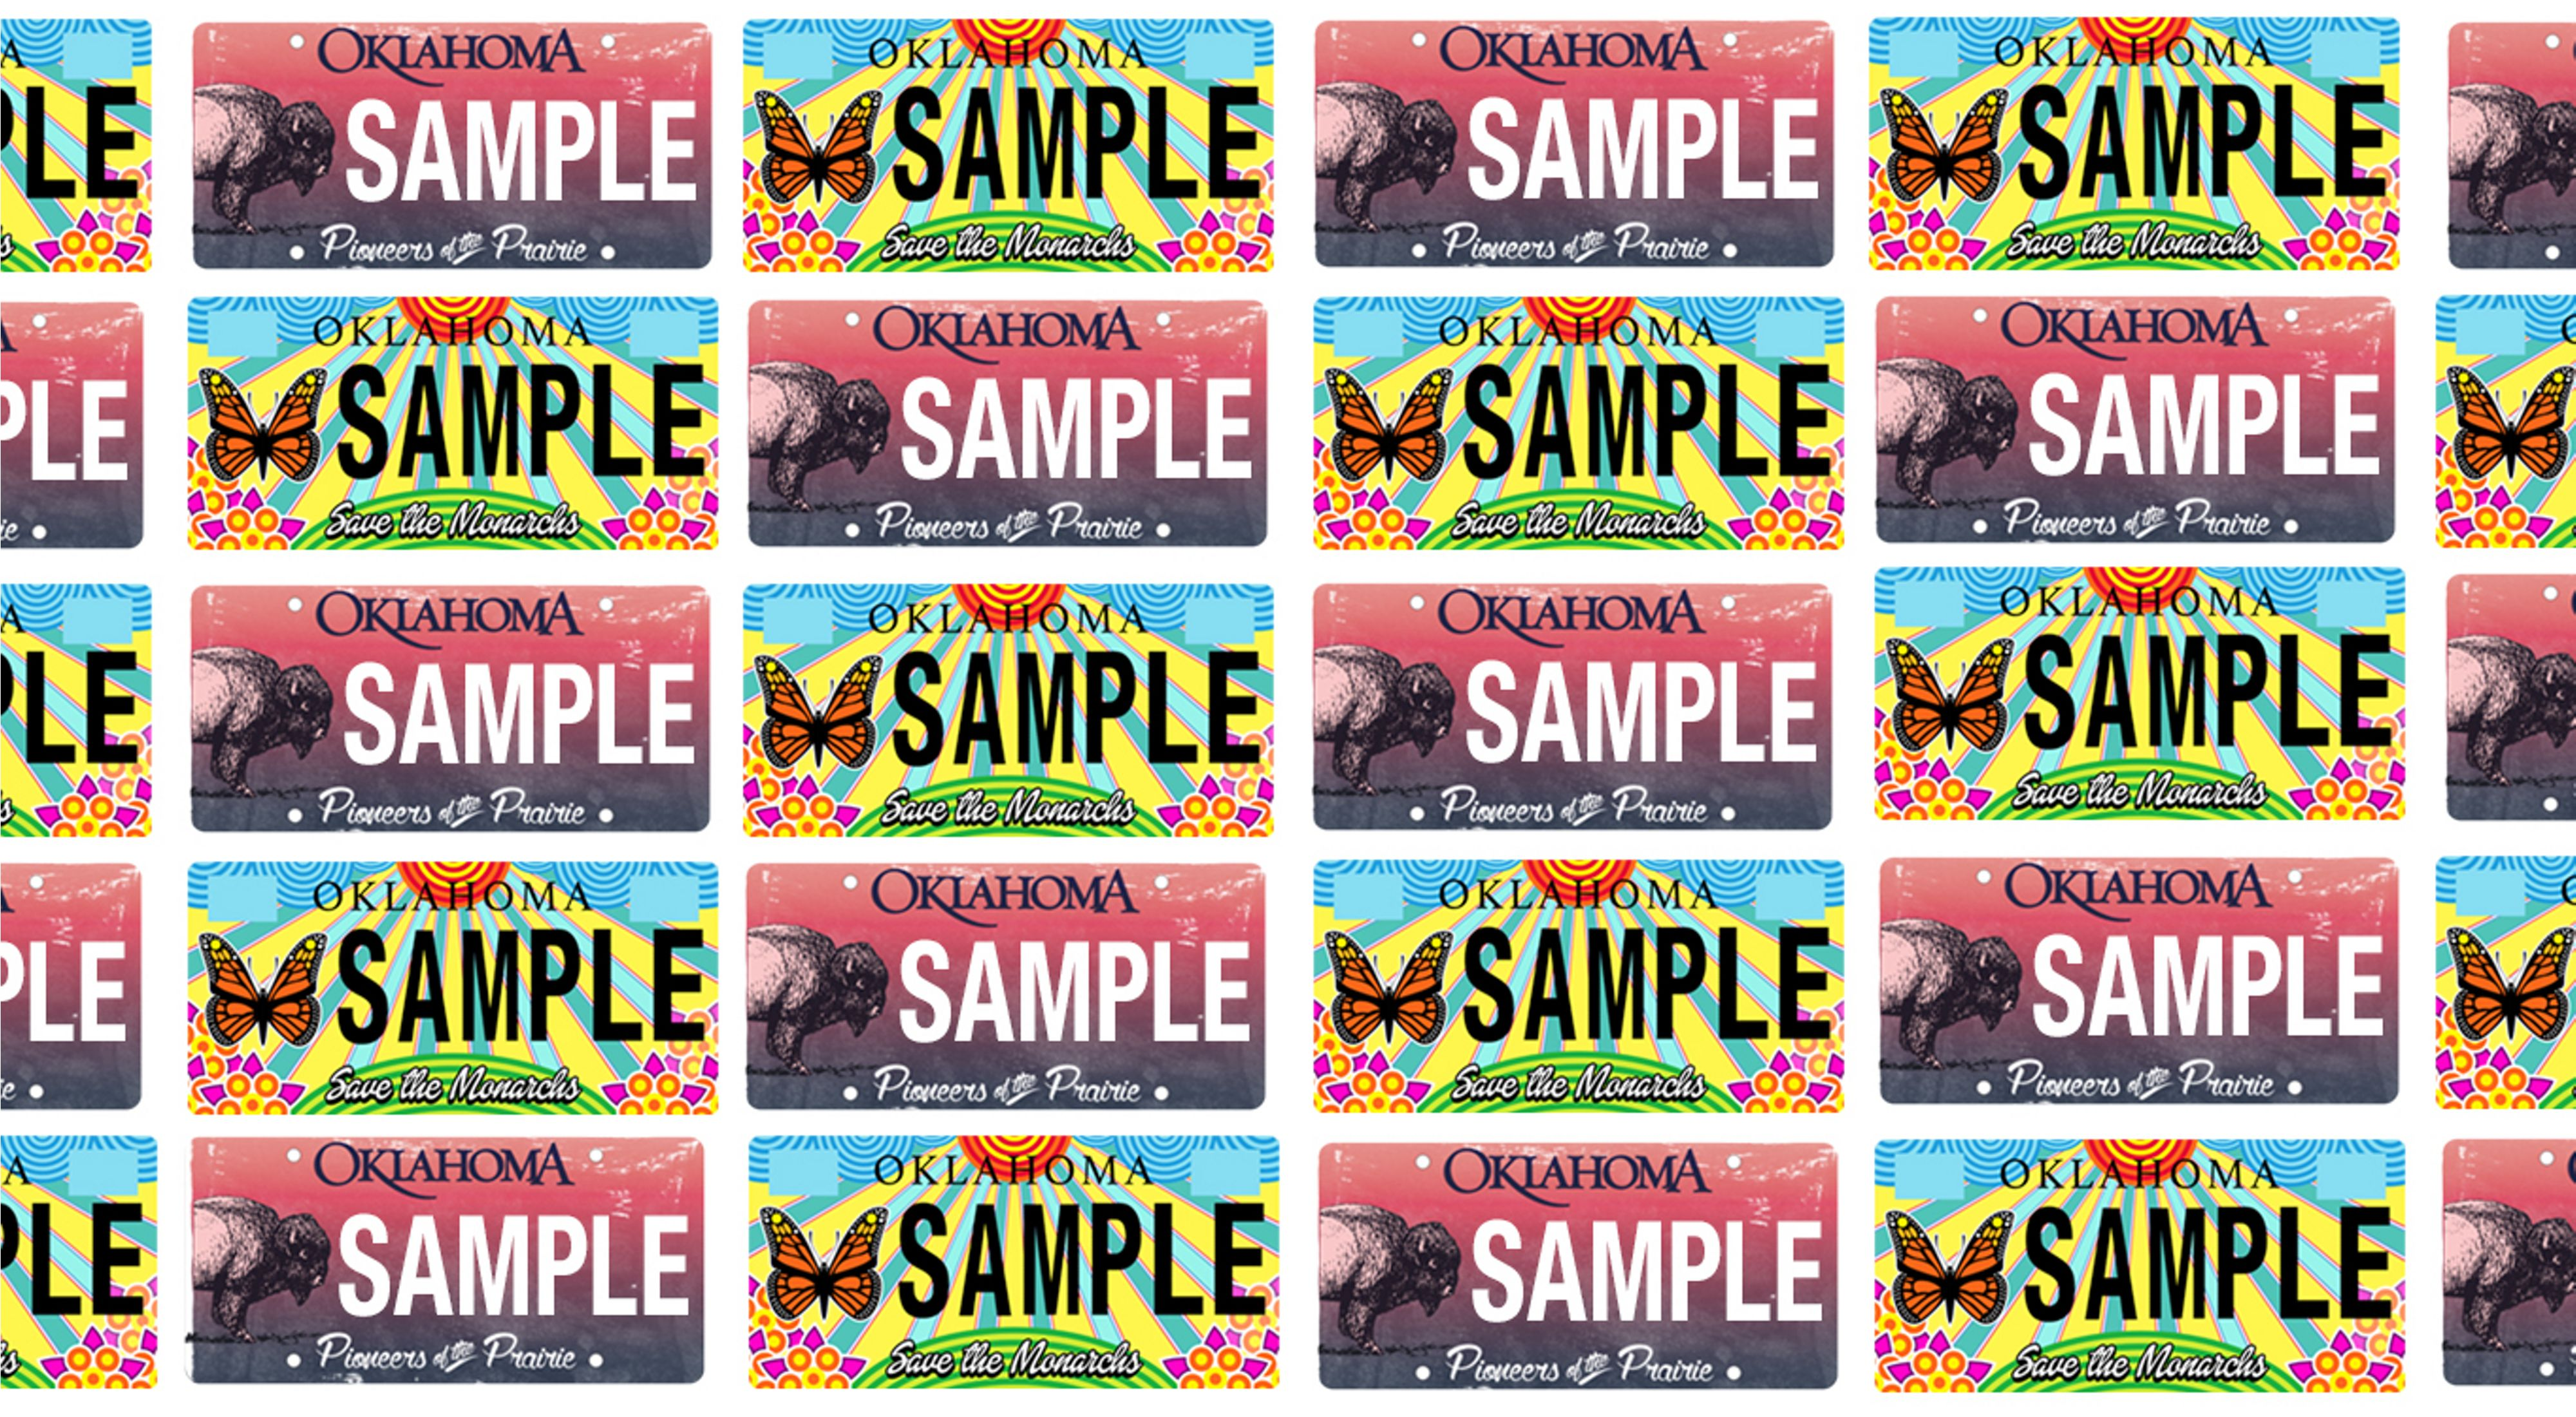 An alternating pattern of sample bison license plates in pink with a bison on them and monarch plates with a blue background, yellow sun rays, and an orange and black monarch.